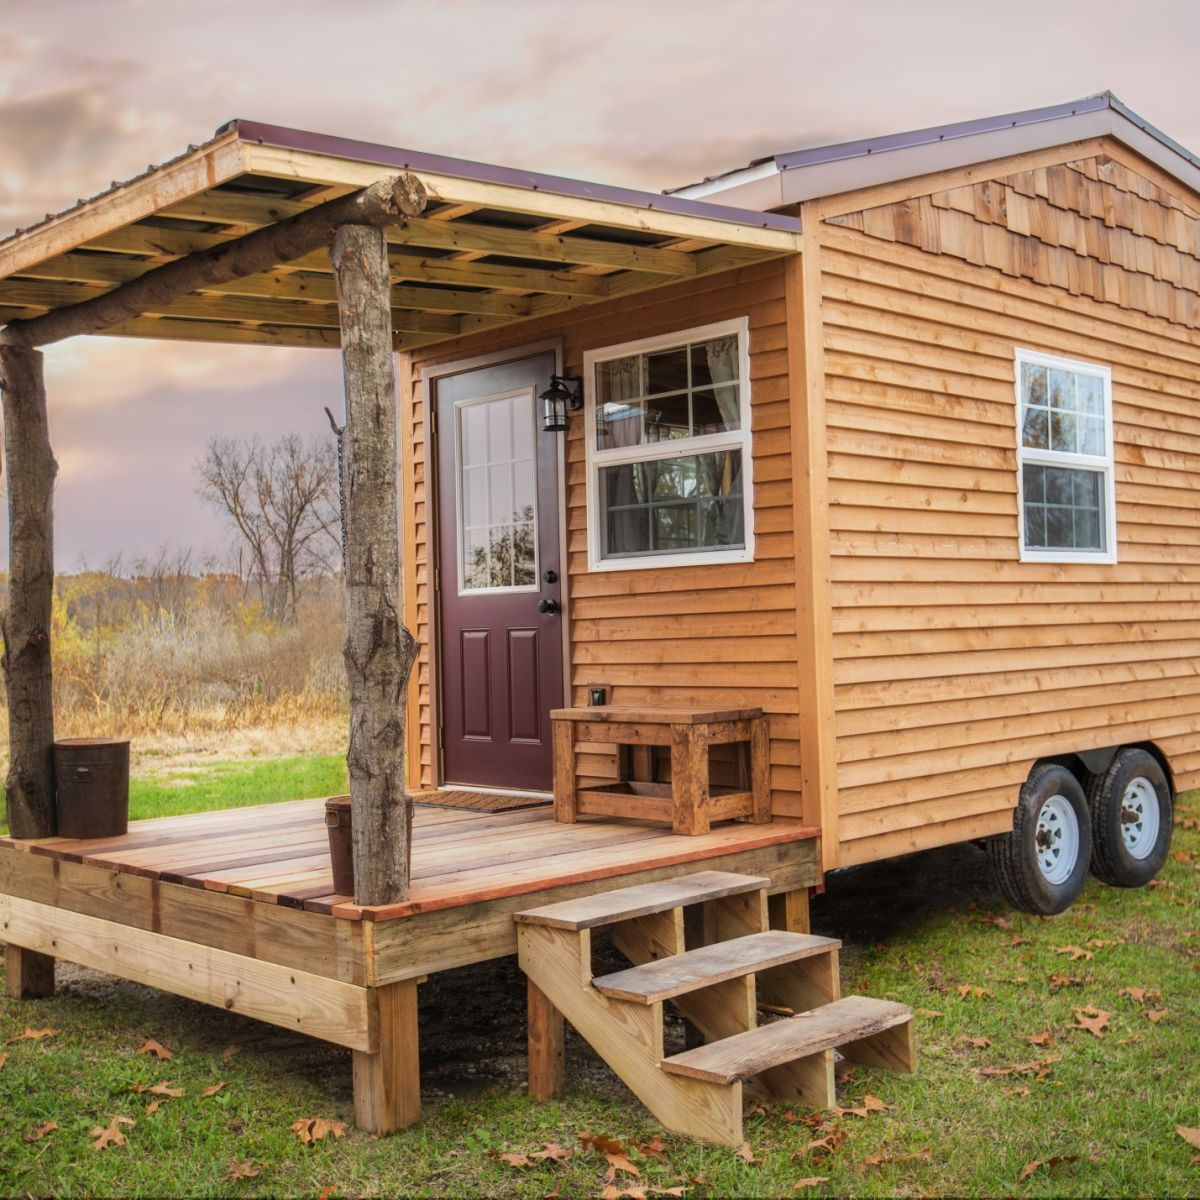 The Petite Cabin Tiny House For Sale In Huntington Indiana Tiny House Ideas Cottages Tiny House Listings Backyard Guest Houses